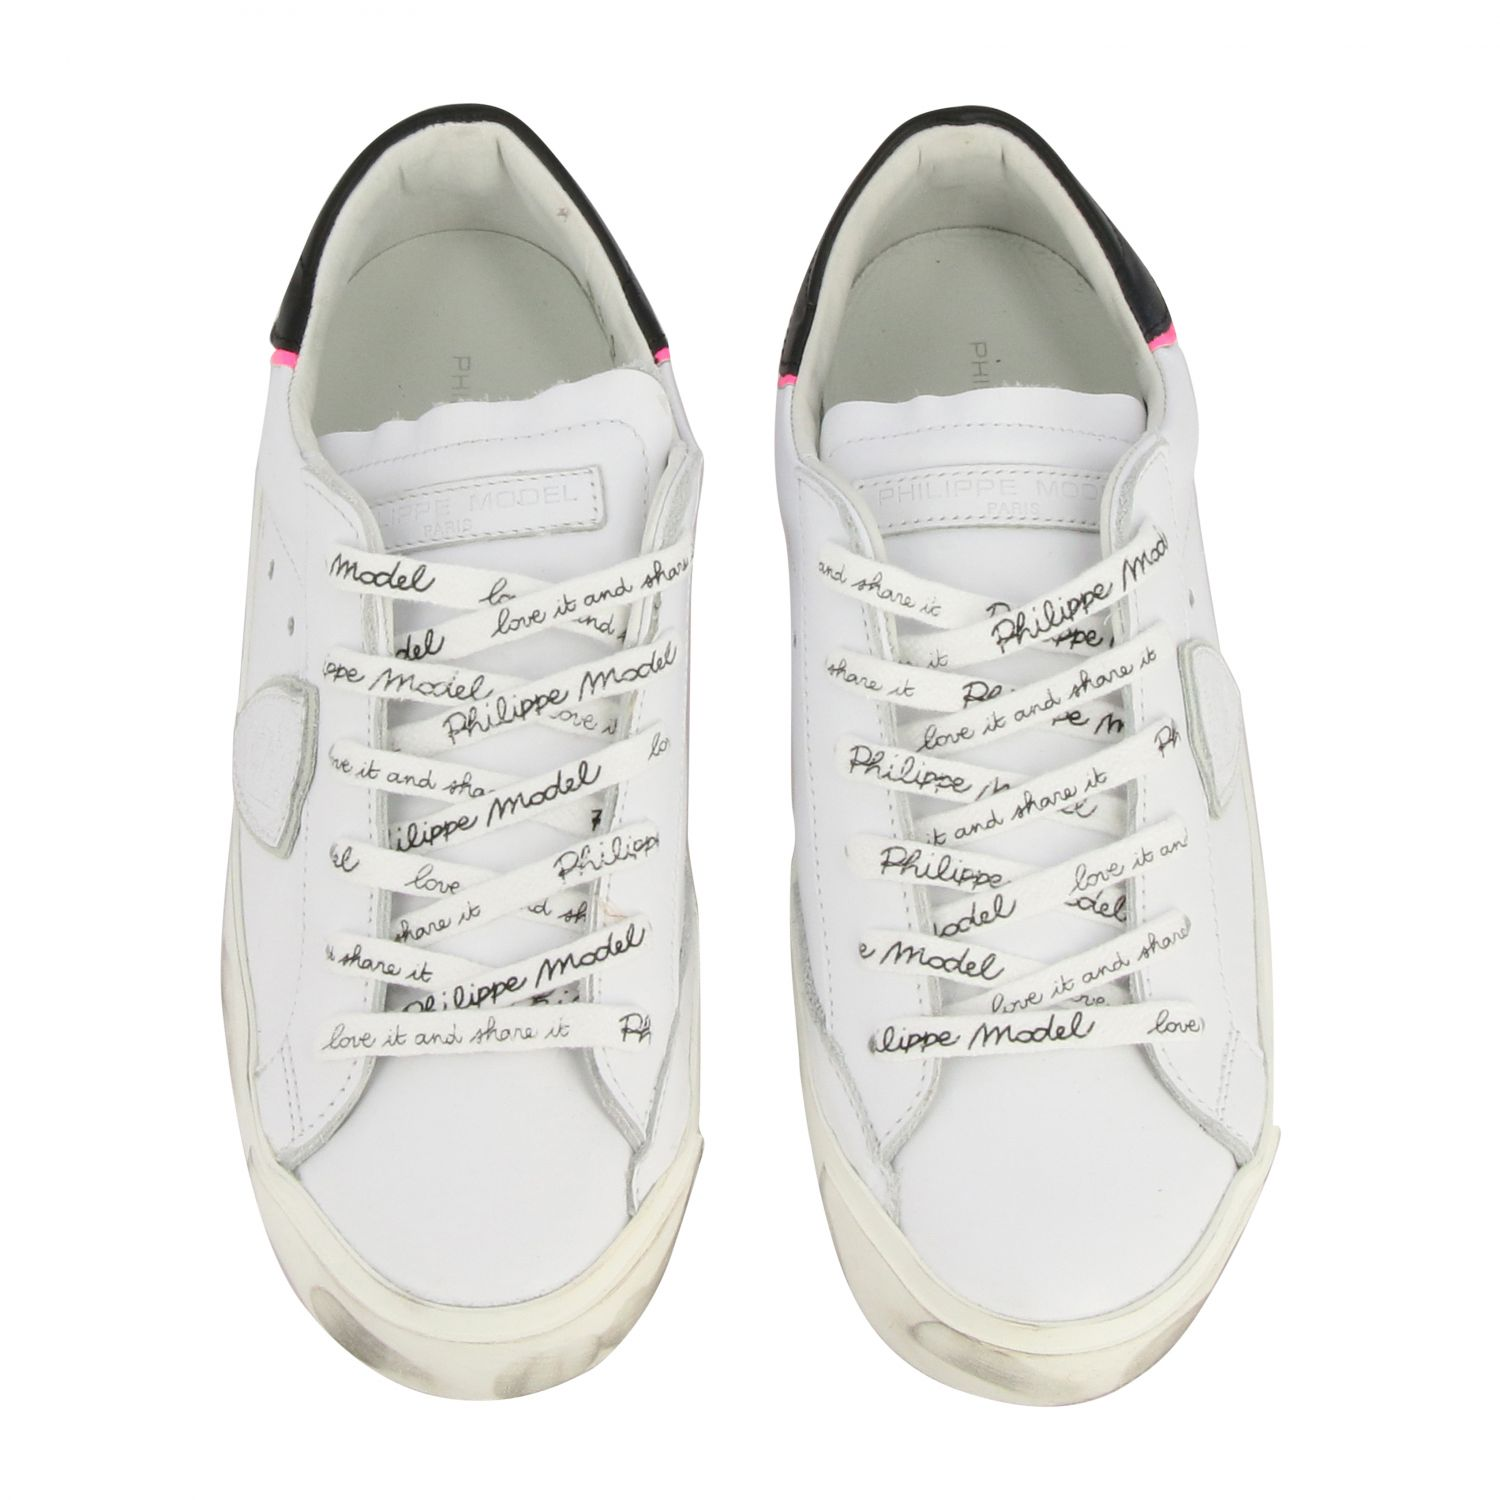 Sneakers women Philippe Model white 3